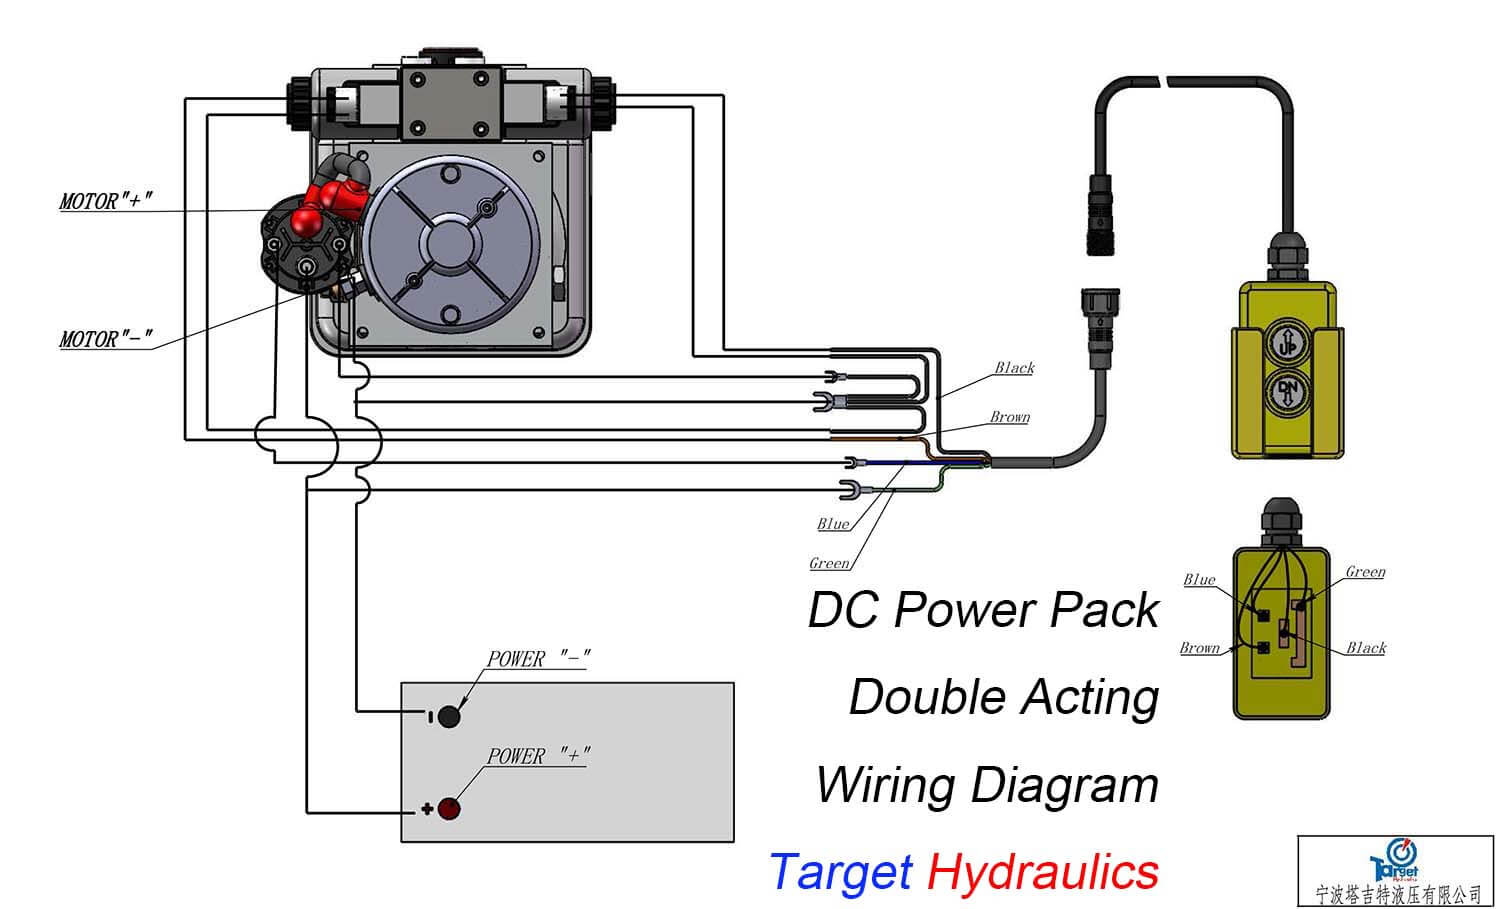 How to Wire_DC Motor Double Acting Power Pack how to wire hydraulic power pack,power unit diagram design dump trailer hydraulic pump wiring diagram at mifinder.co